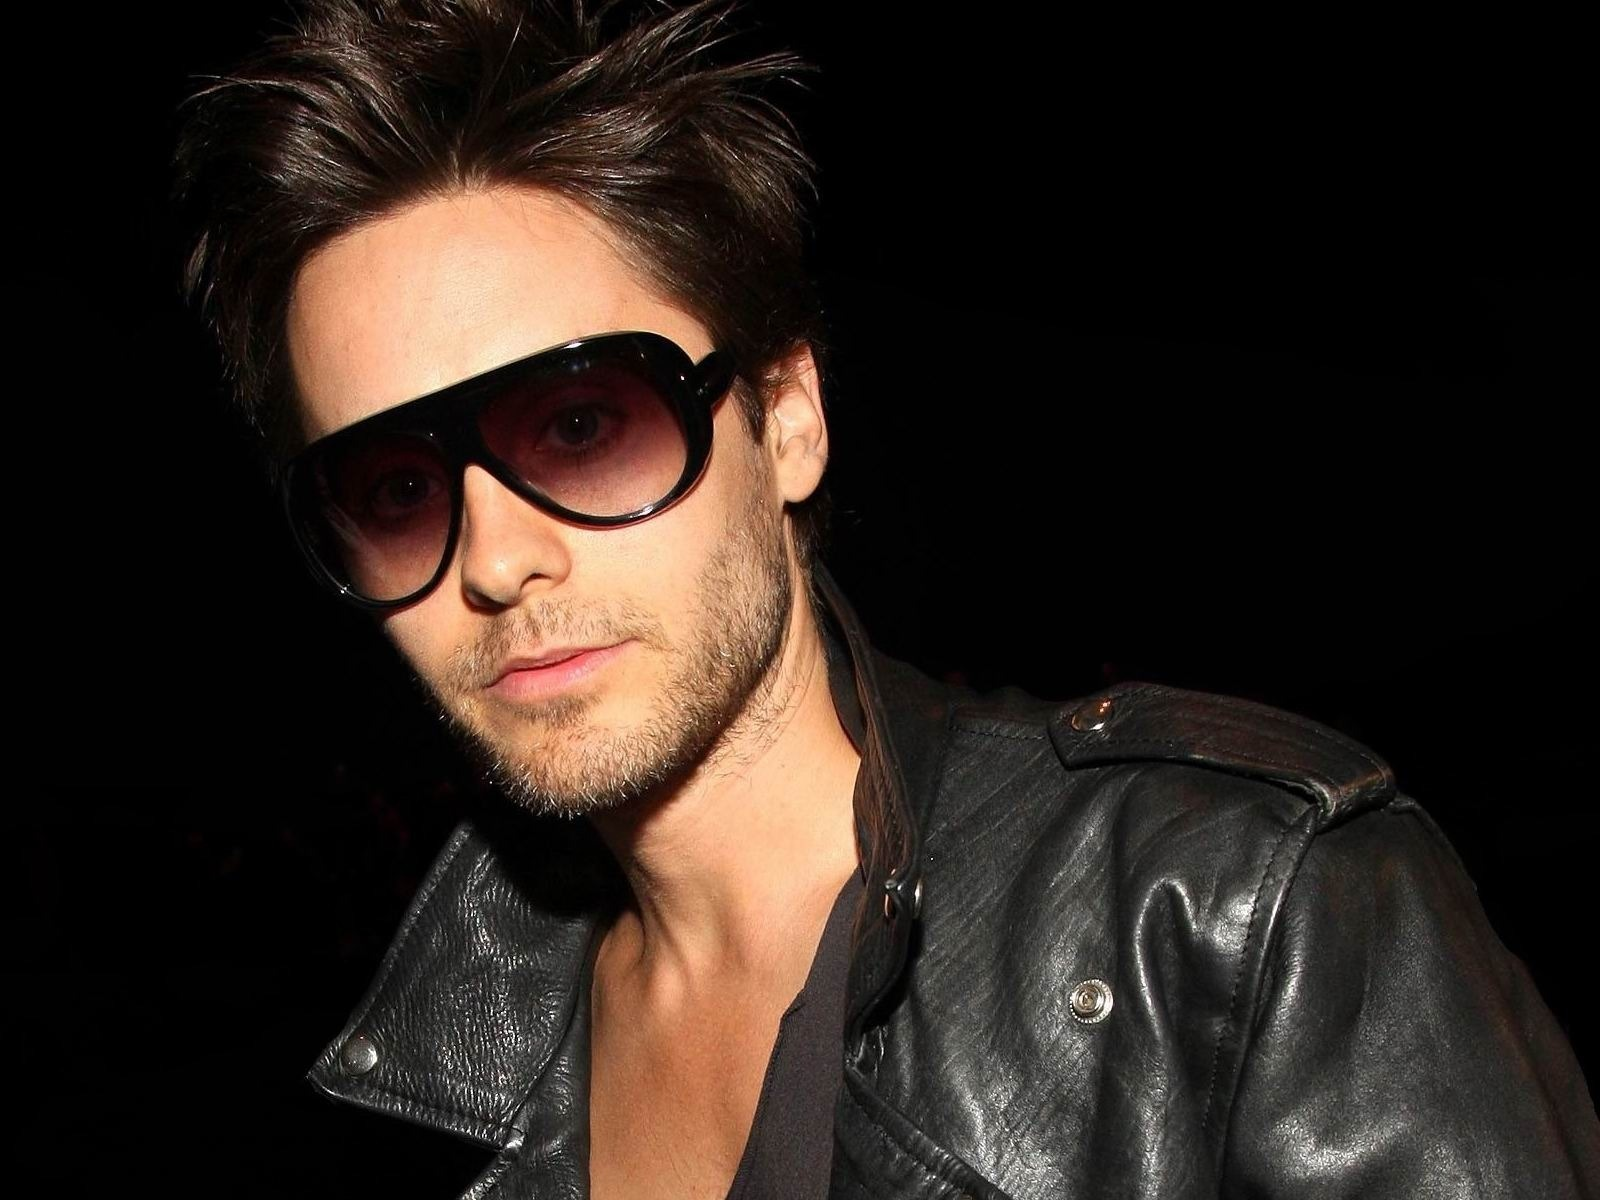 Free Wallpapers Blog: Jared Leto Wallpaper